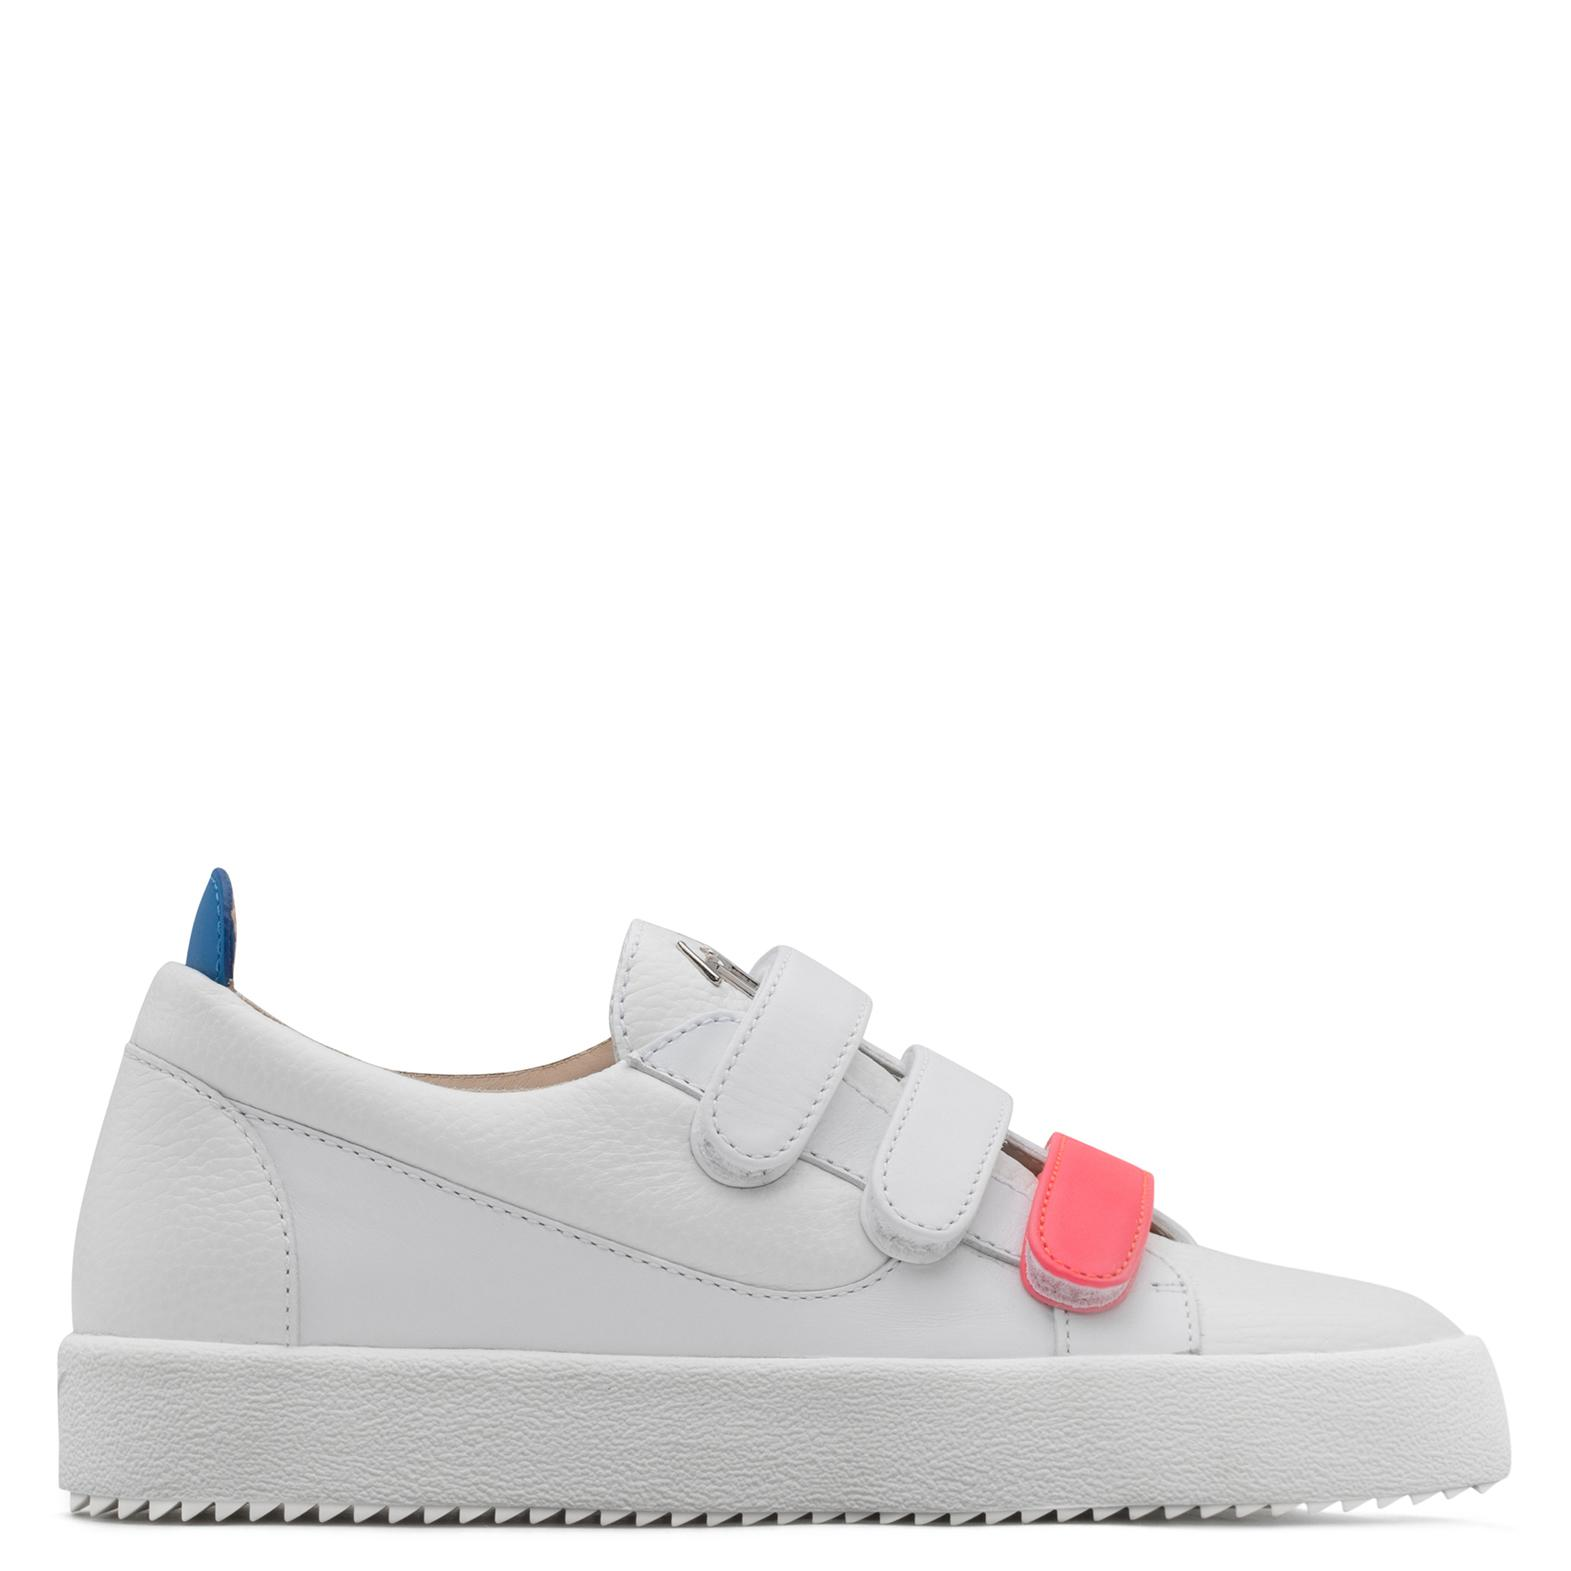 Giuseppe Zanotti Calfskin leather low-top sneaker with three straps JODY Azk1kBrgh9